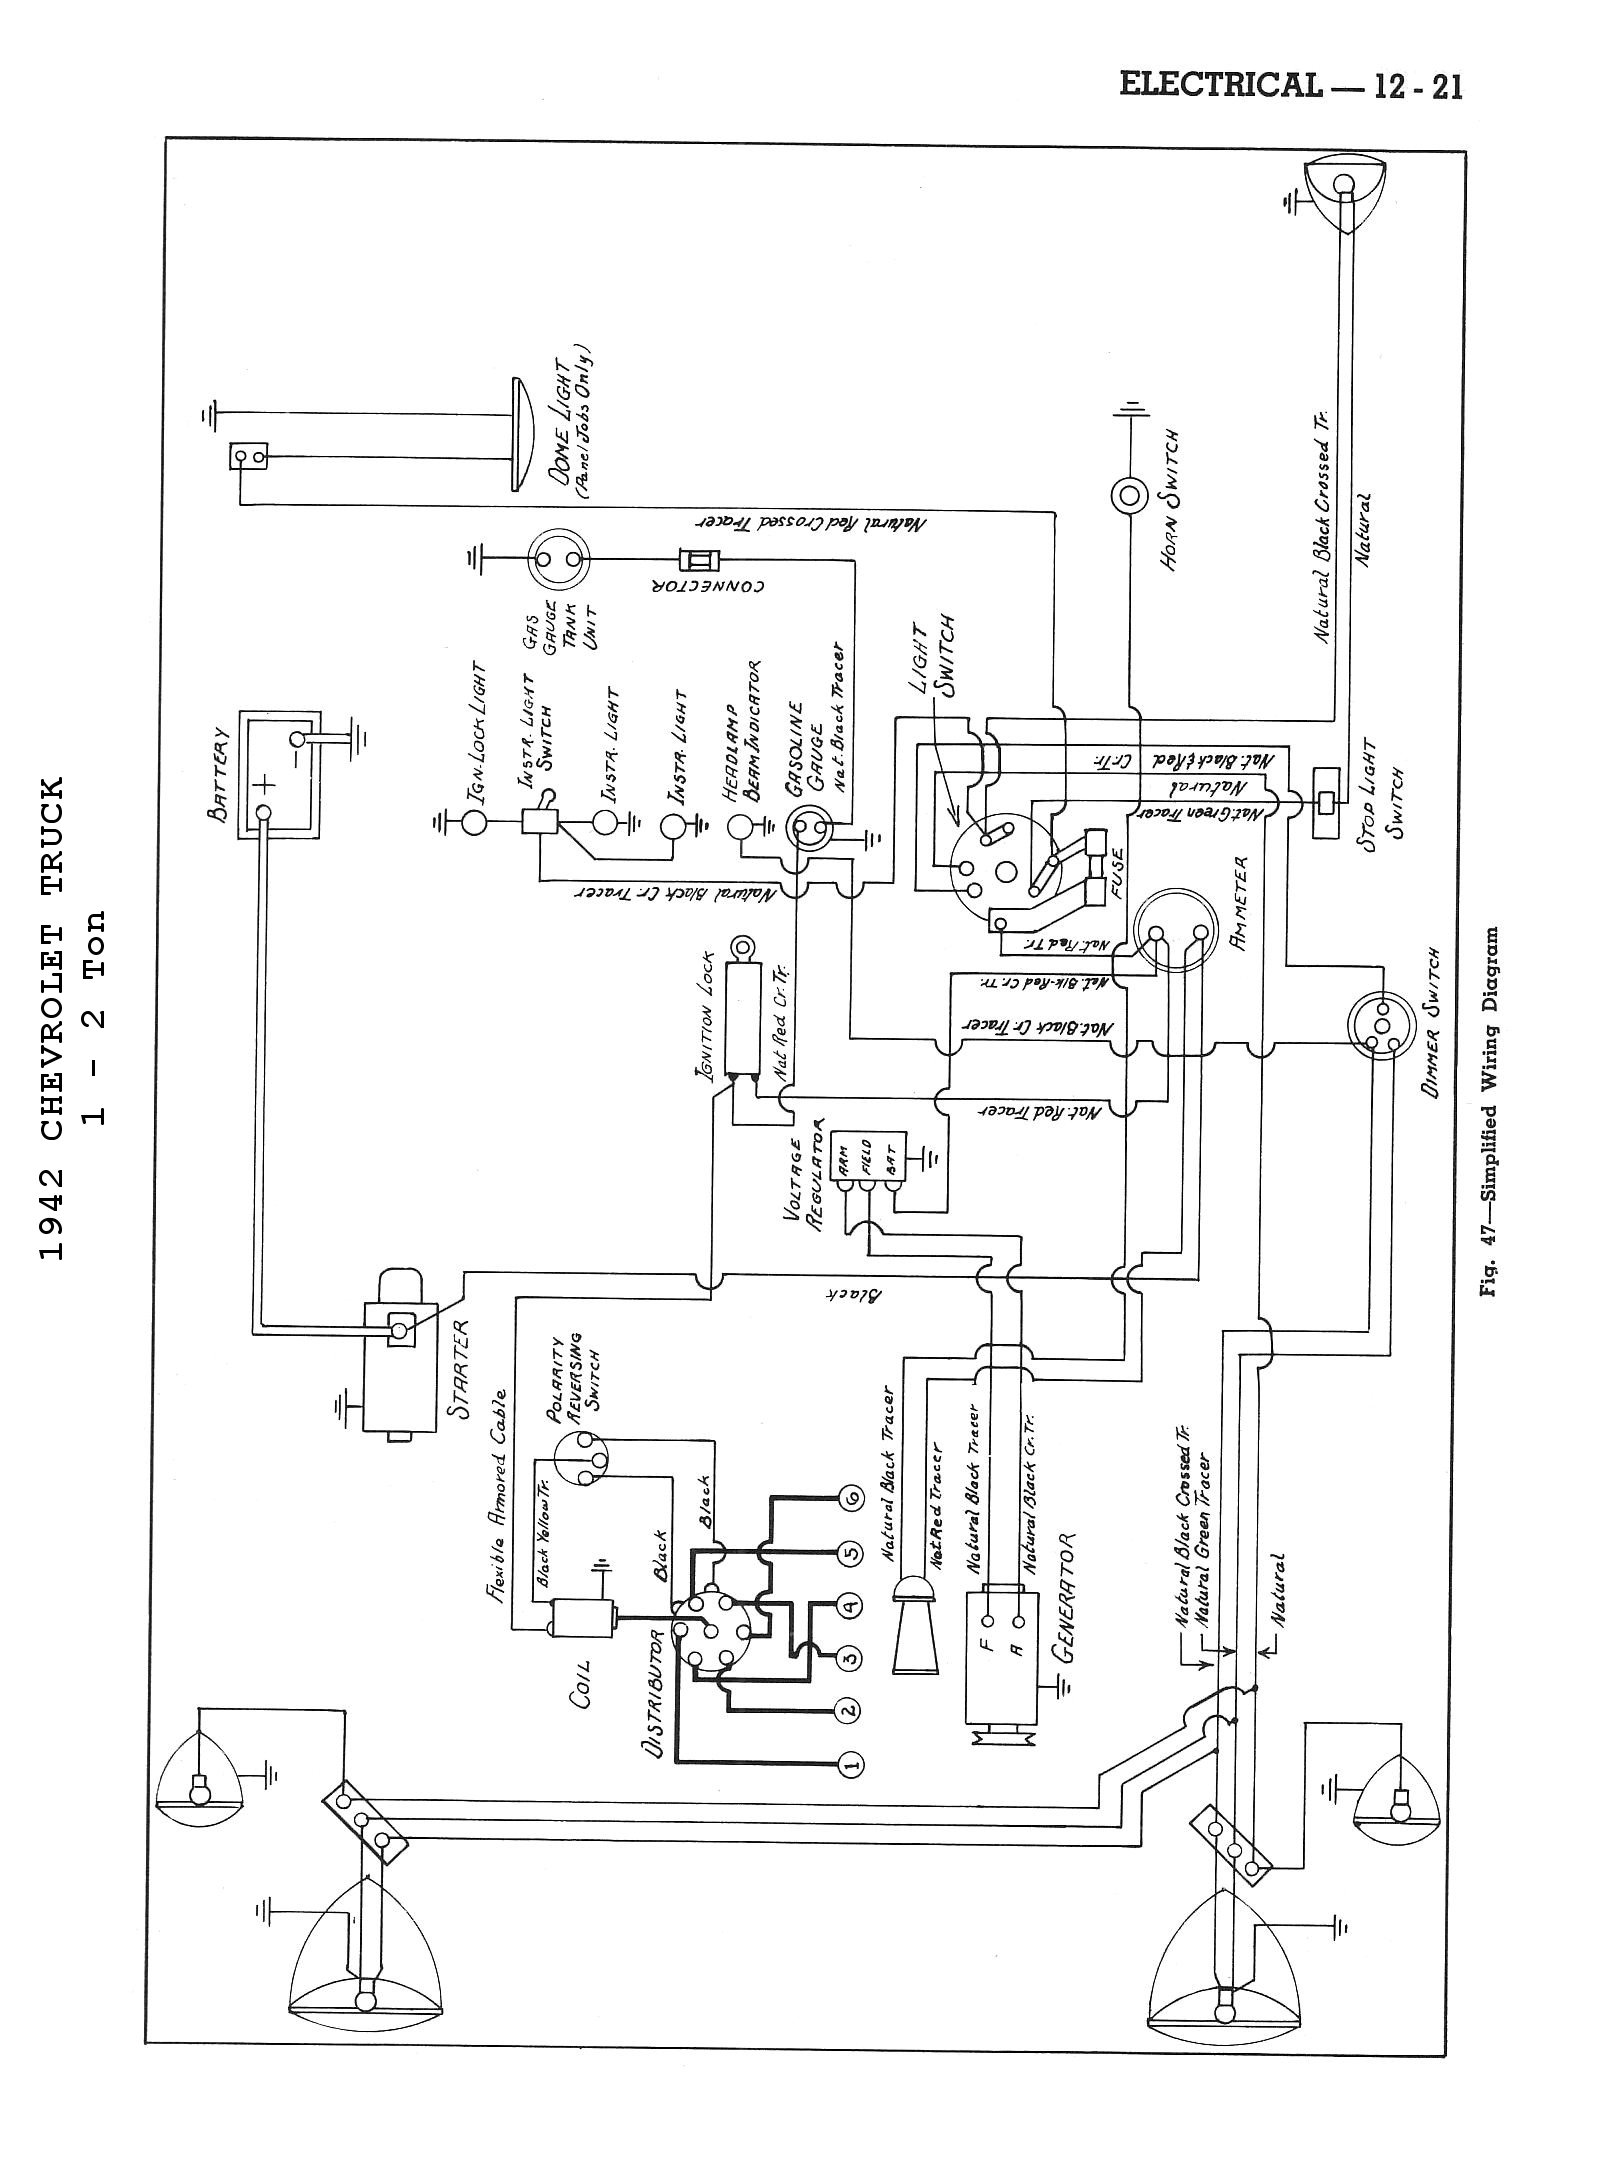 42cm4x2t1221 chevy wiring diagrams Ford F-150 Wire Schematics at creativeand.co